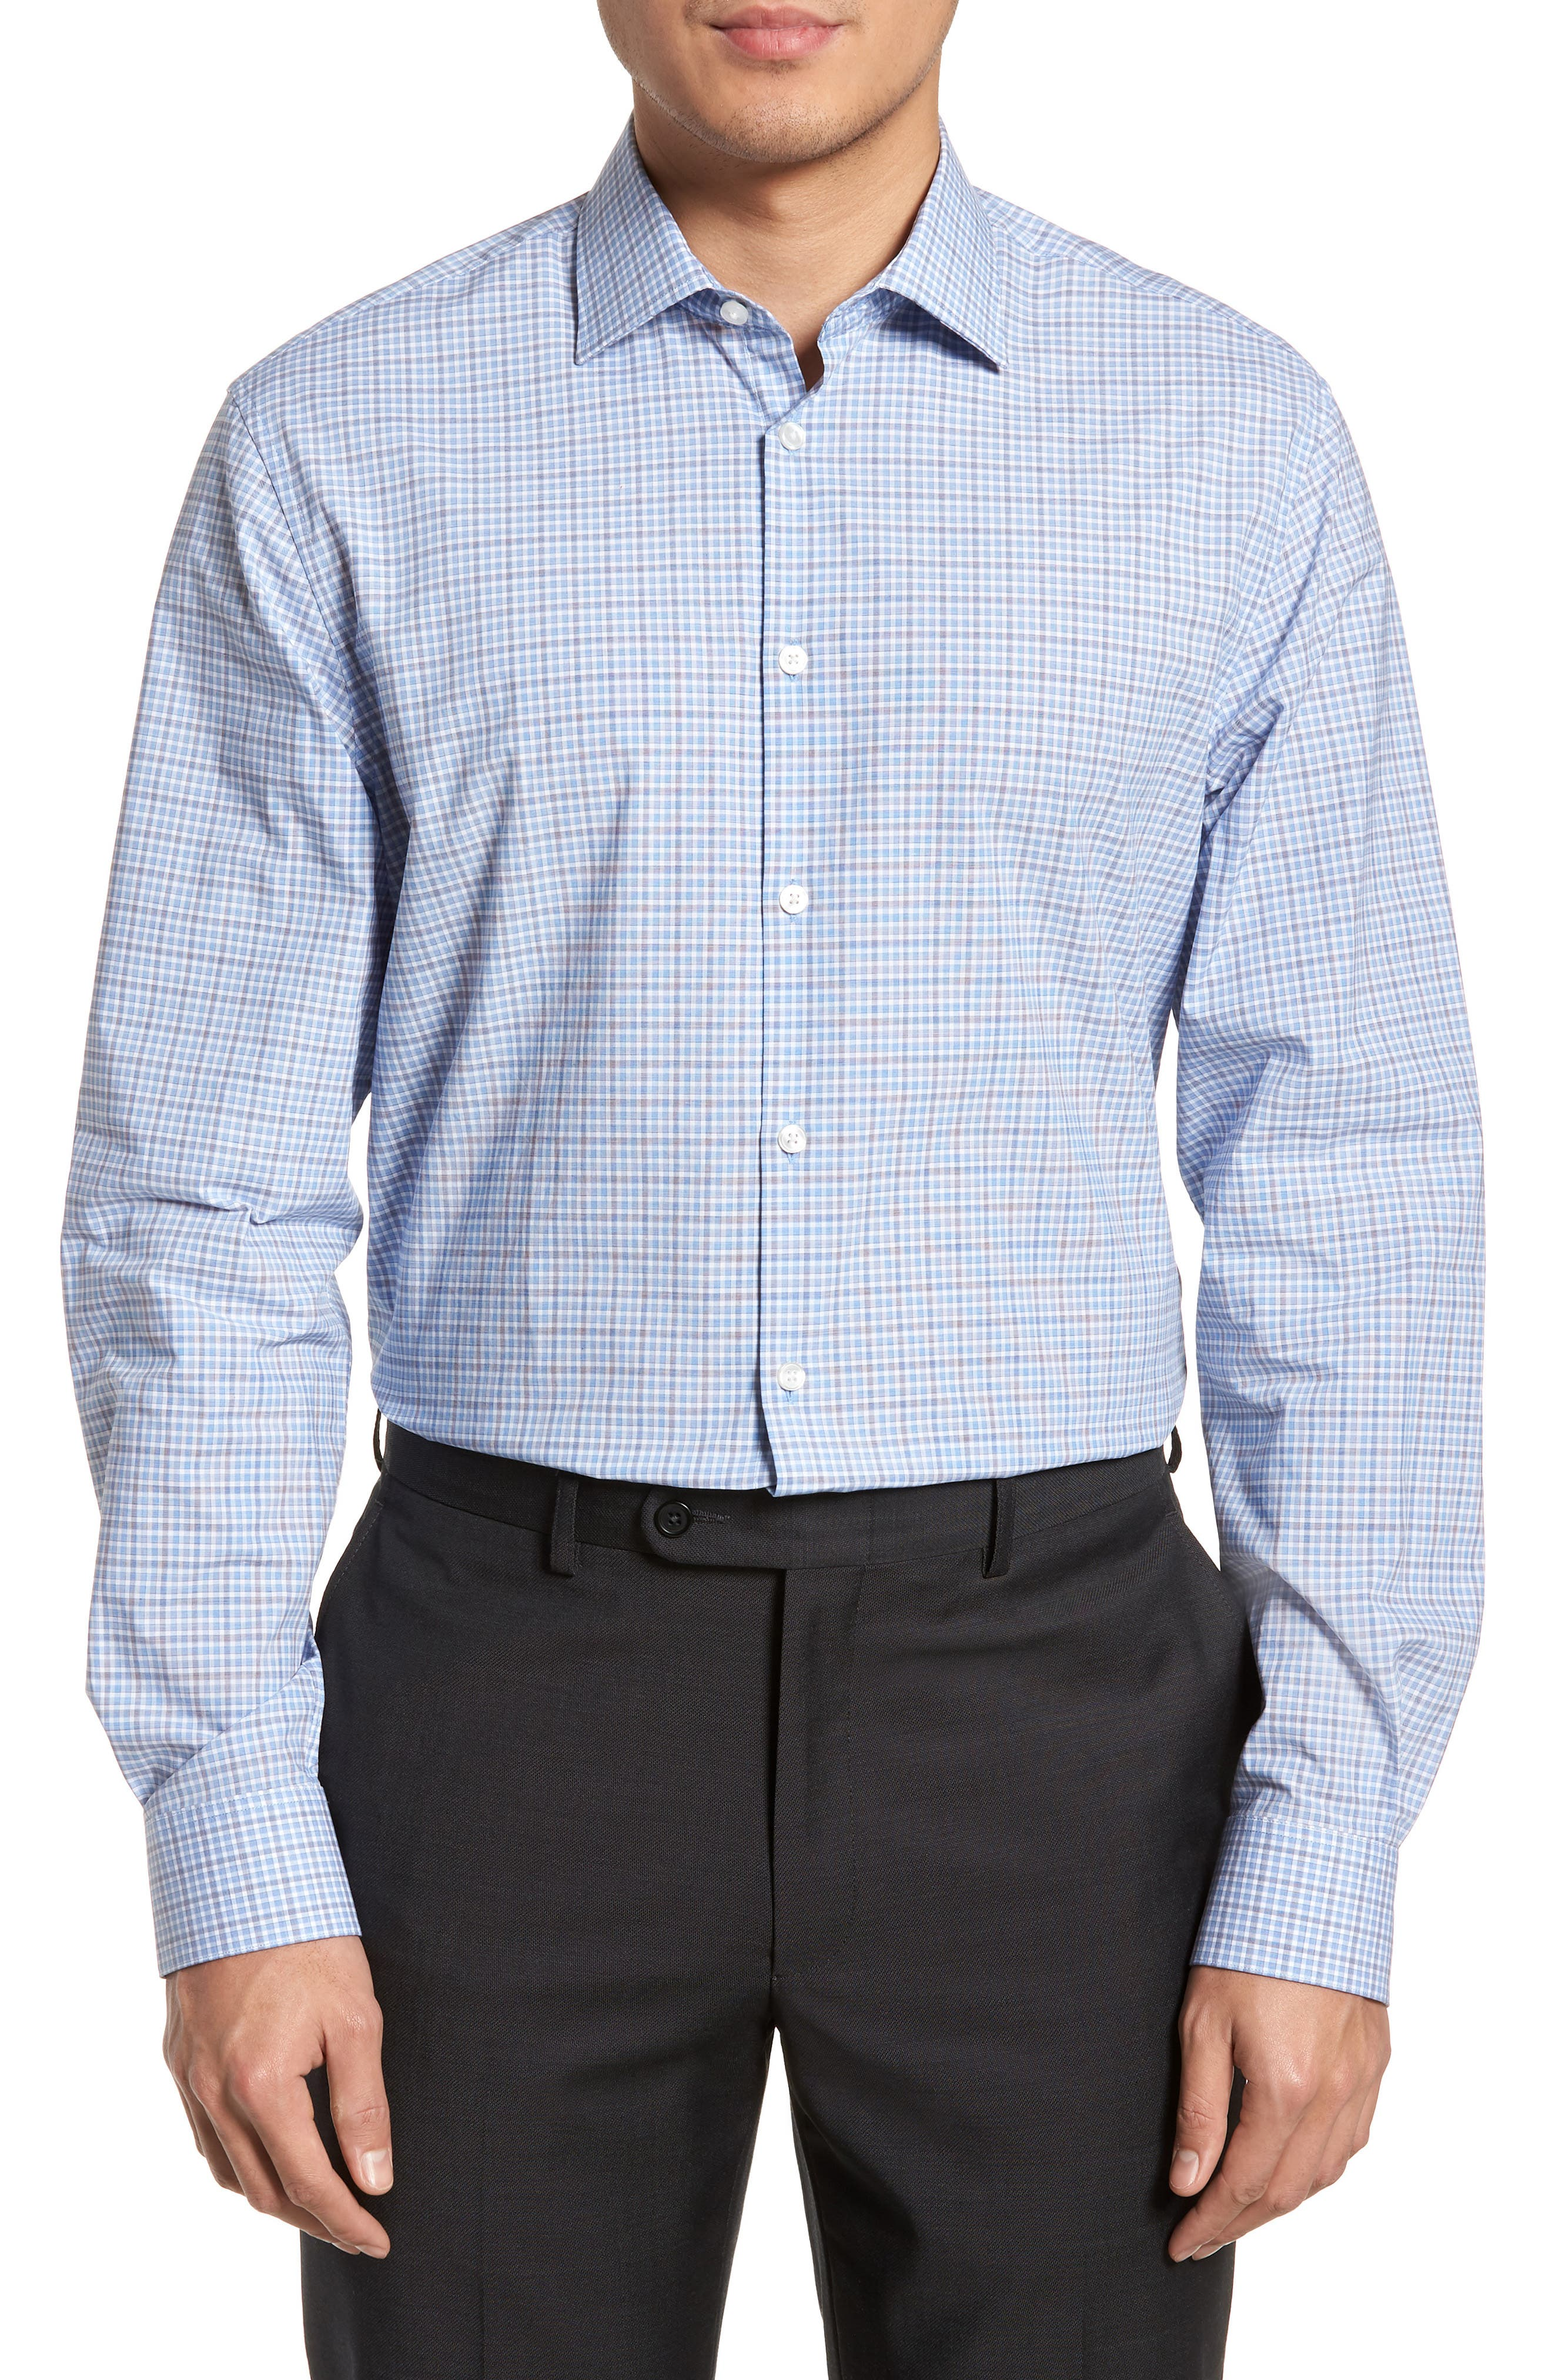 Regular Fit Stretch Check Dress Shirt,                             Main thumbnail 1, color,                             Sky